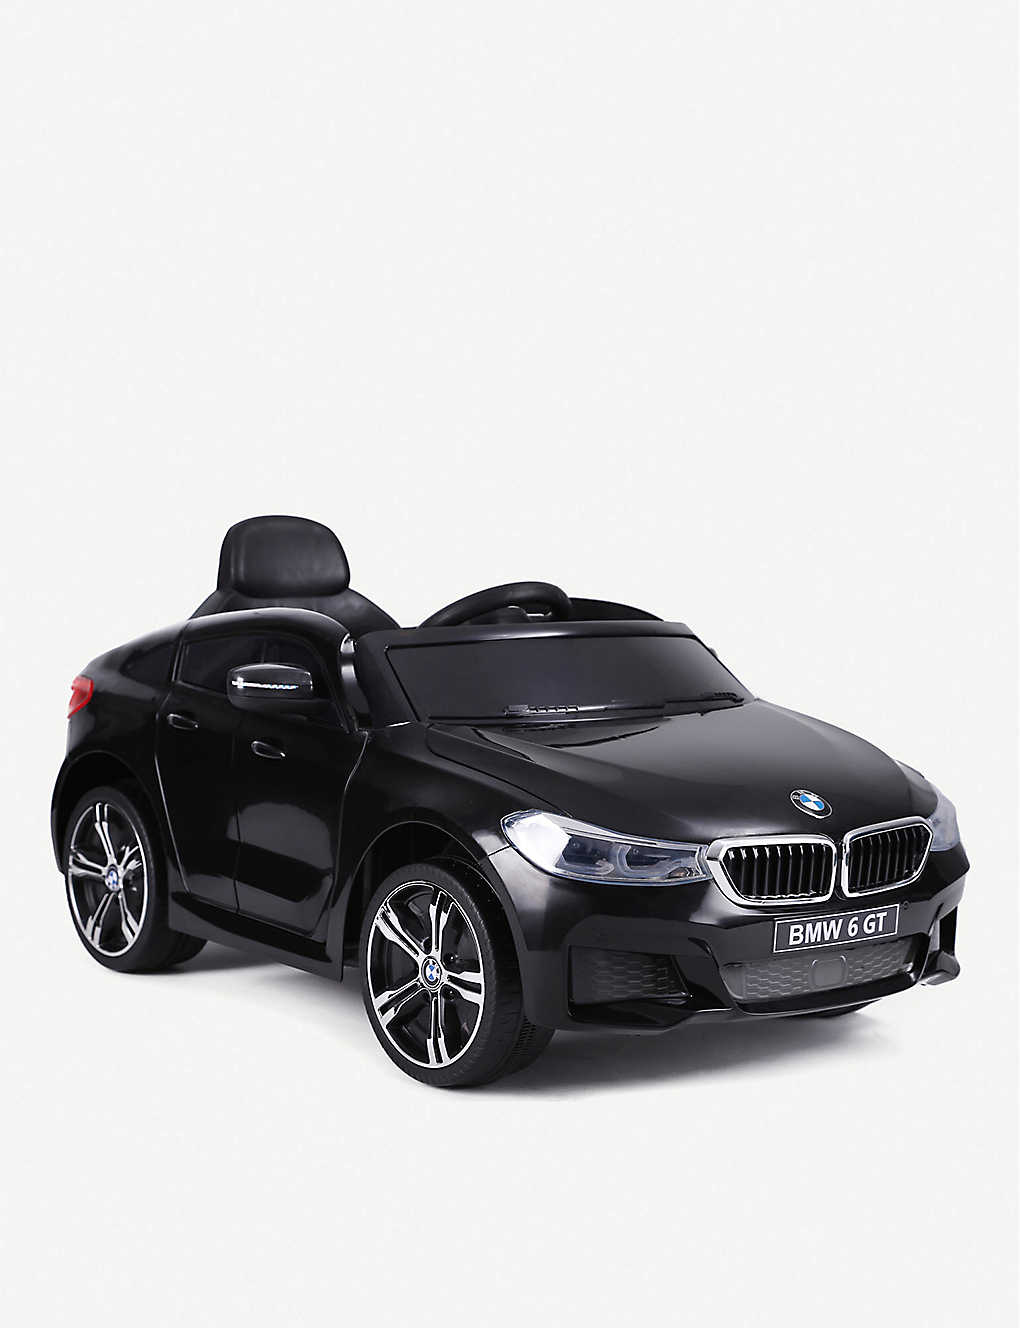 Ricco Bmw 6 Gt Licenced Two Battery Powered Electric Ride On Toy Car Selfridges Com